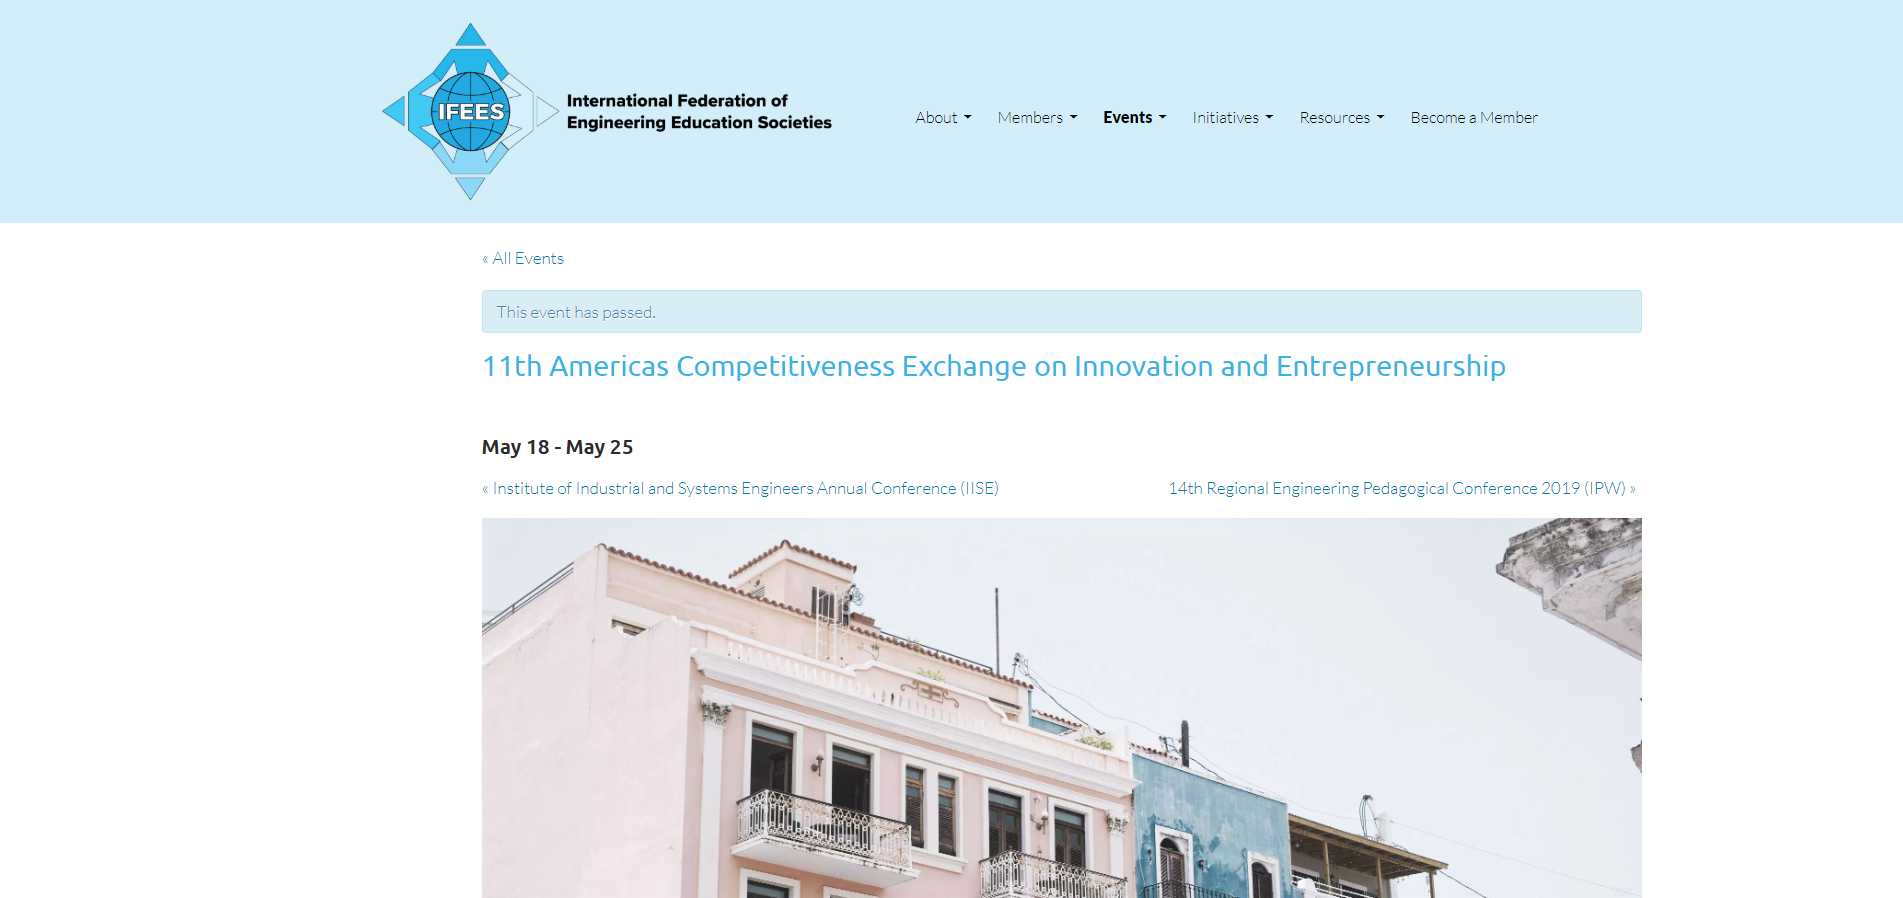 """11th Americas Competitiveness Exchange on Innovation and Entrepreneurship"", International Federation of Engineering Edcation Societies"